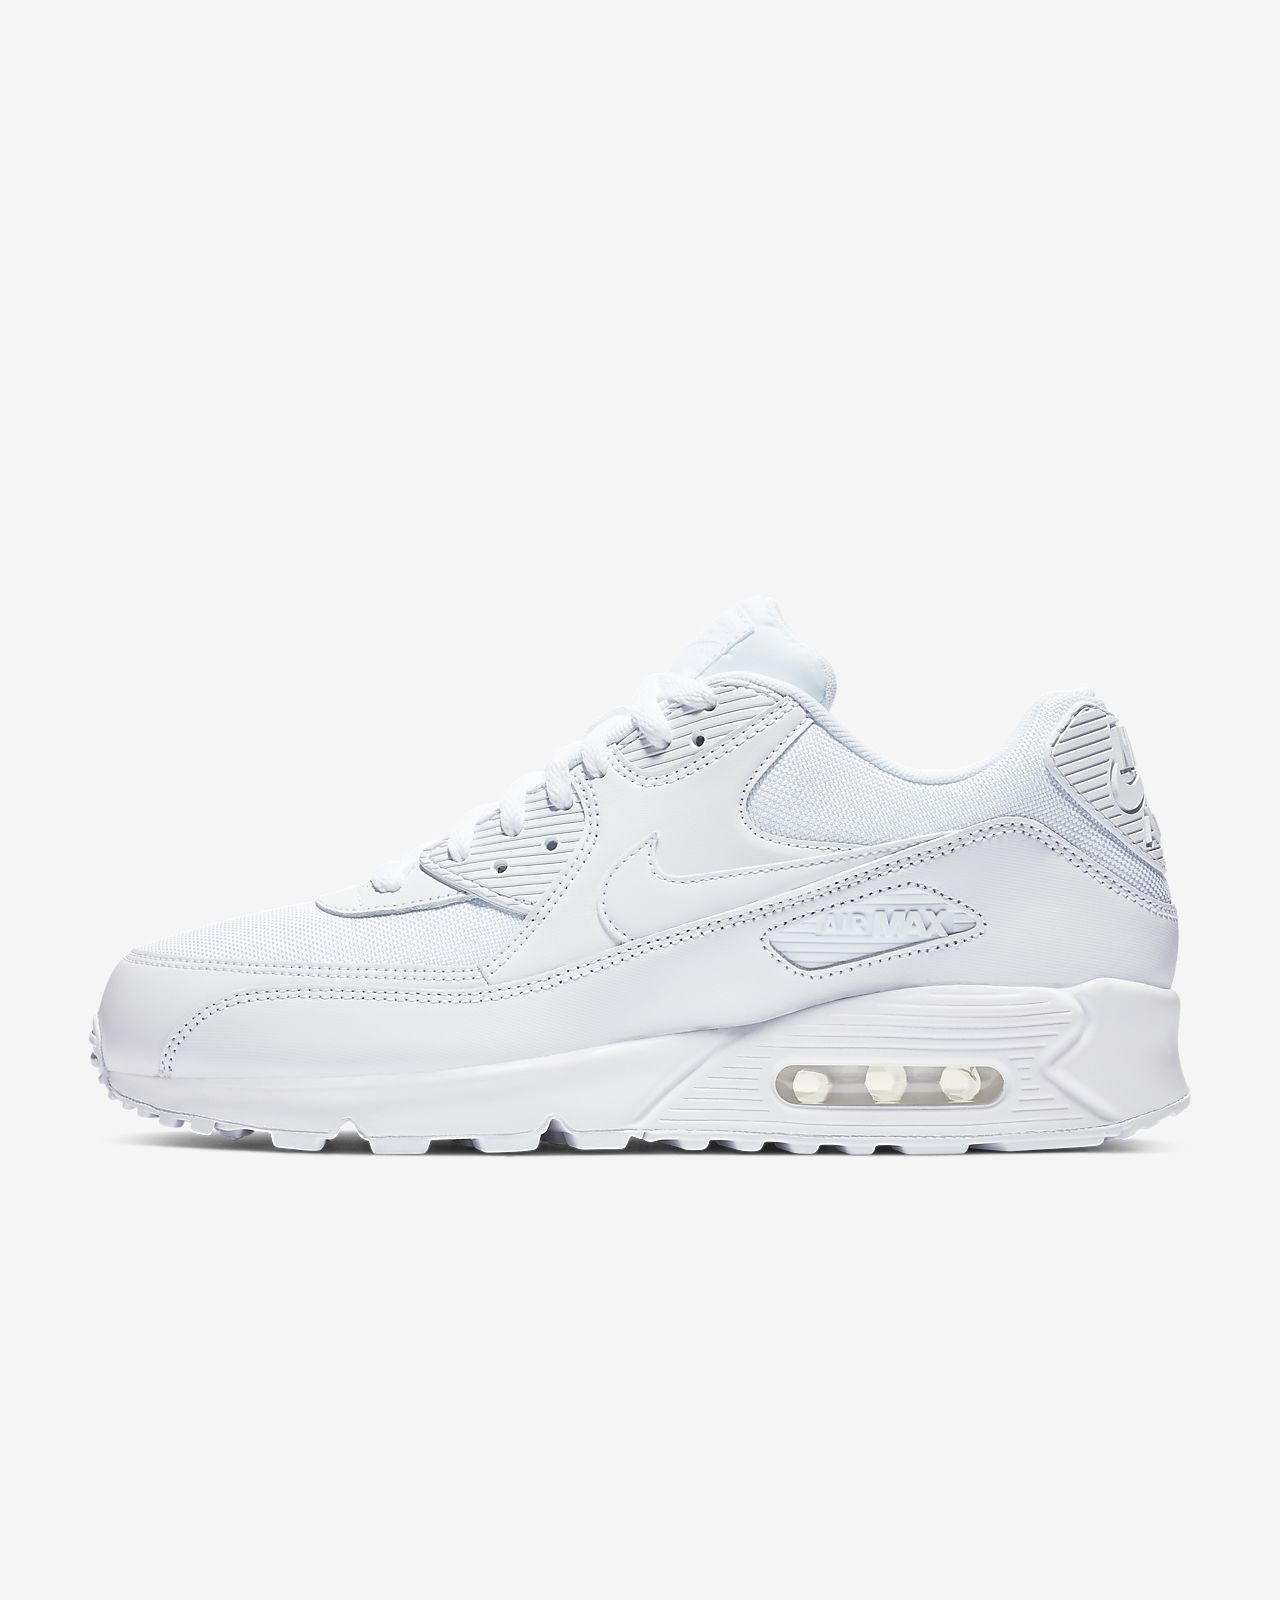 nike air max 90 limited edition 2016 nz